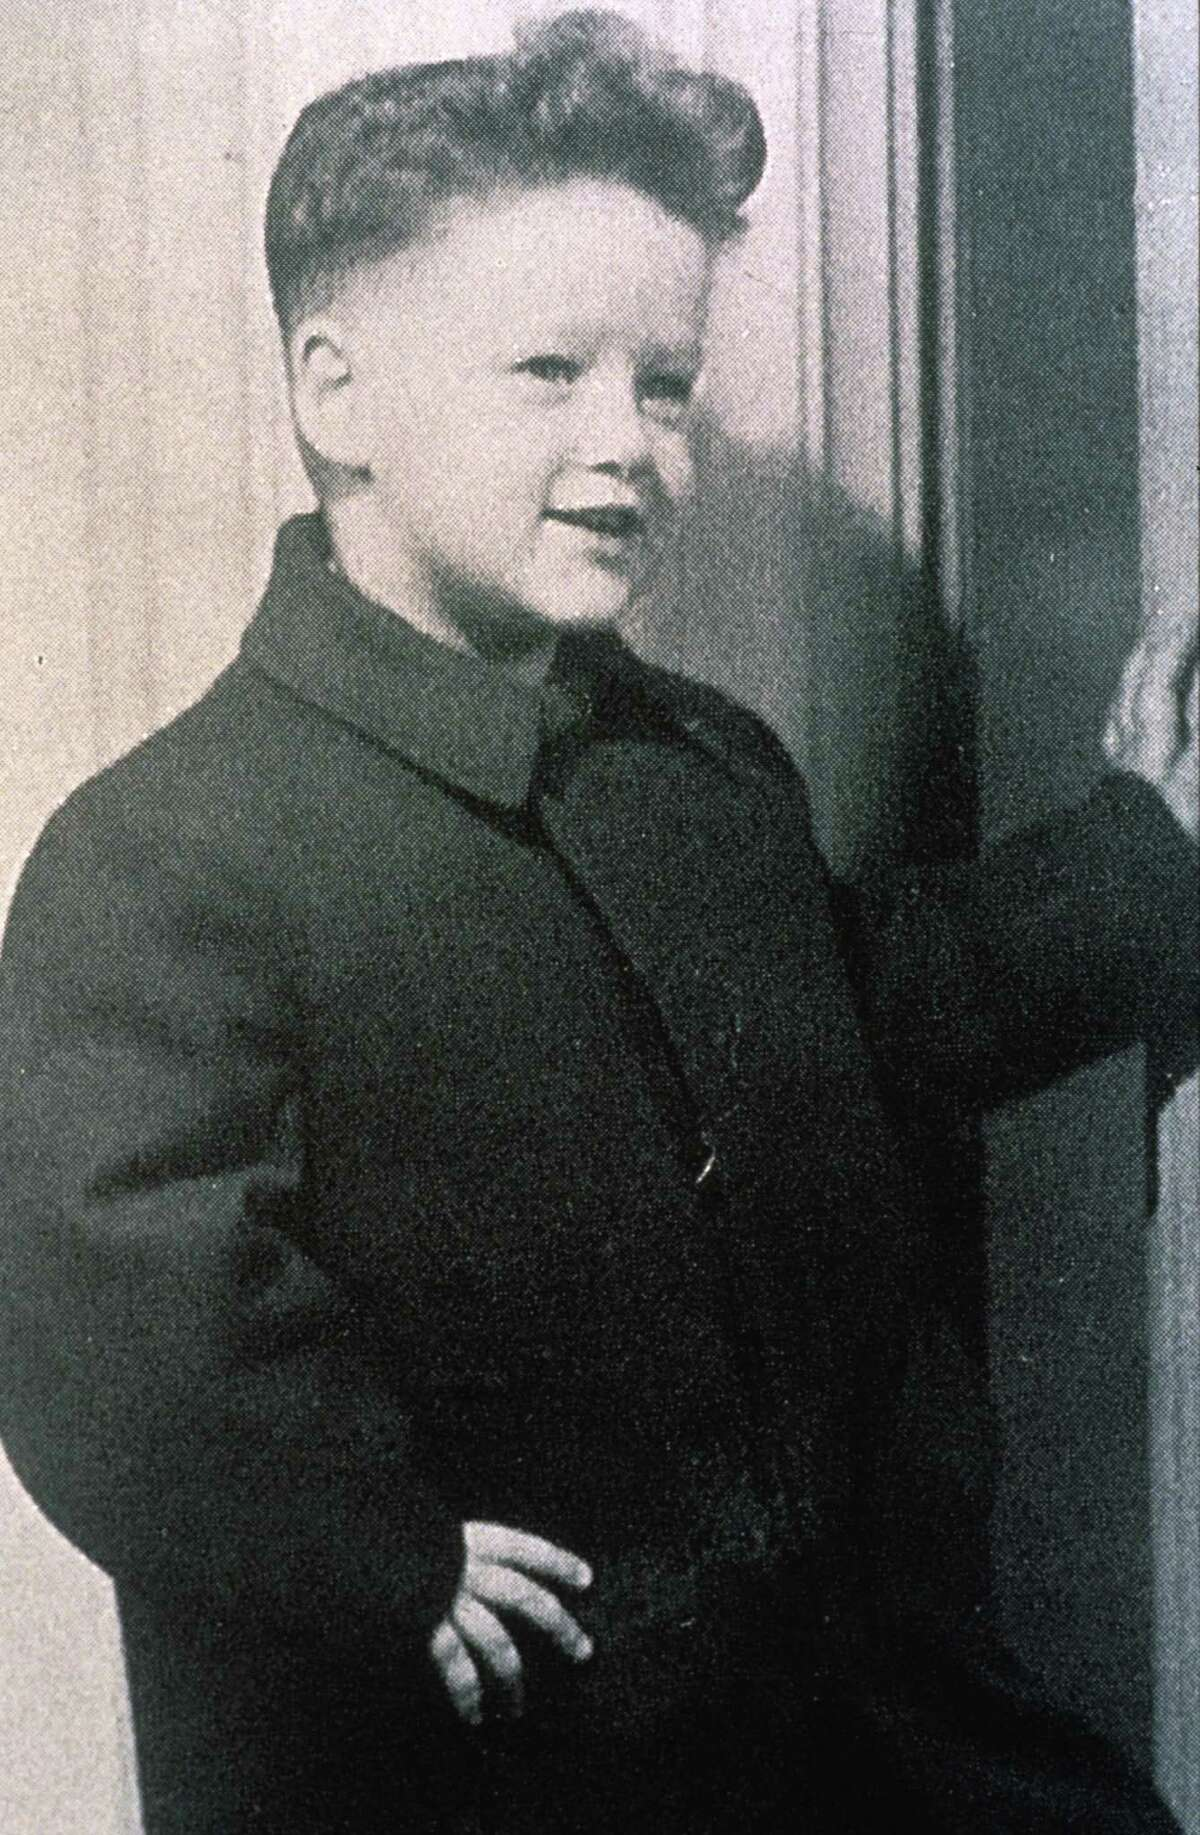 Bill Clinton in his younger years.